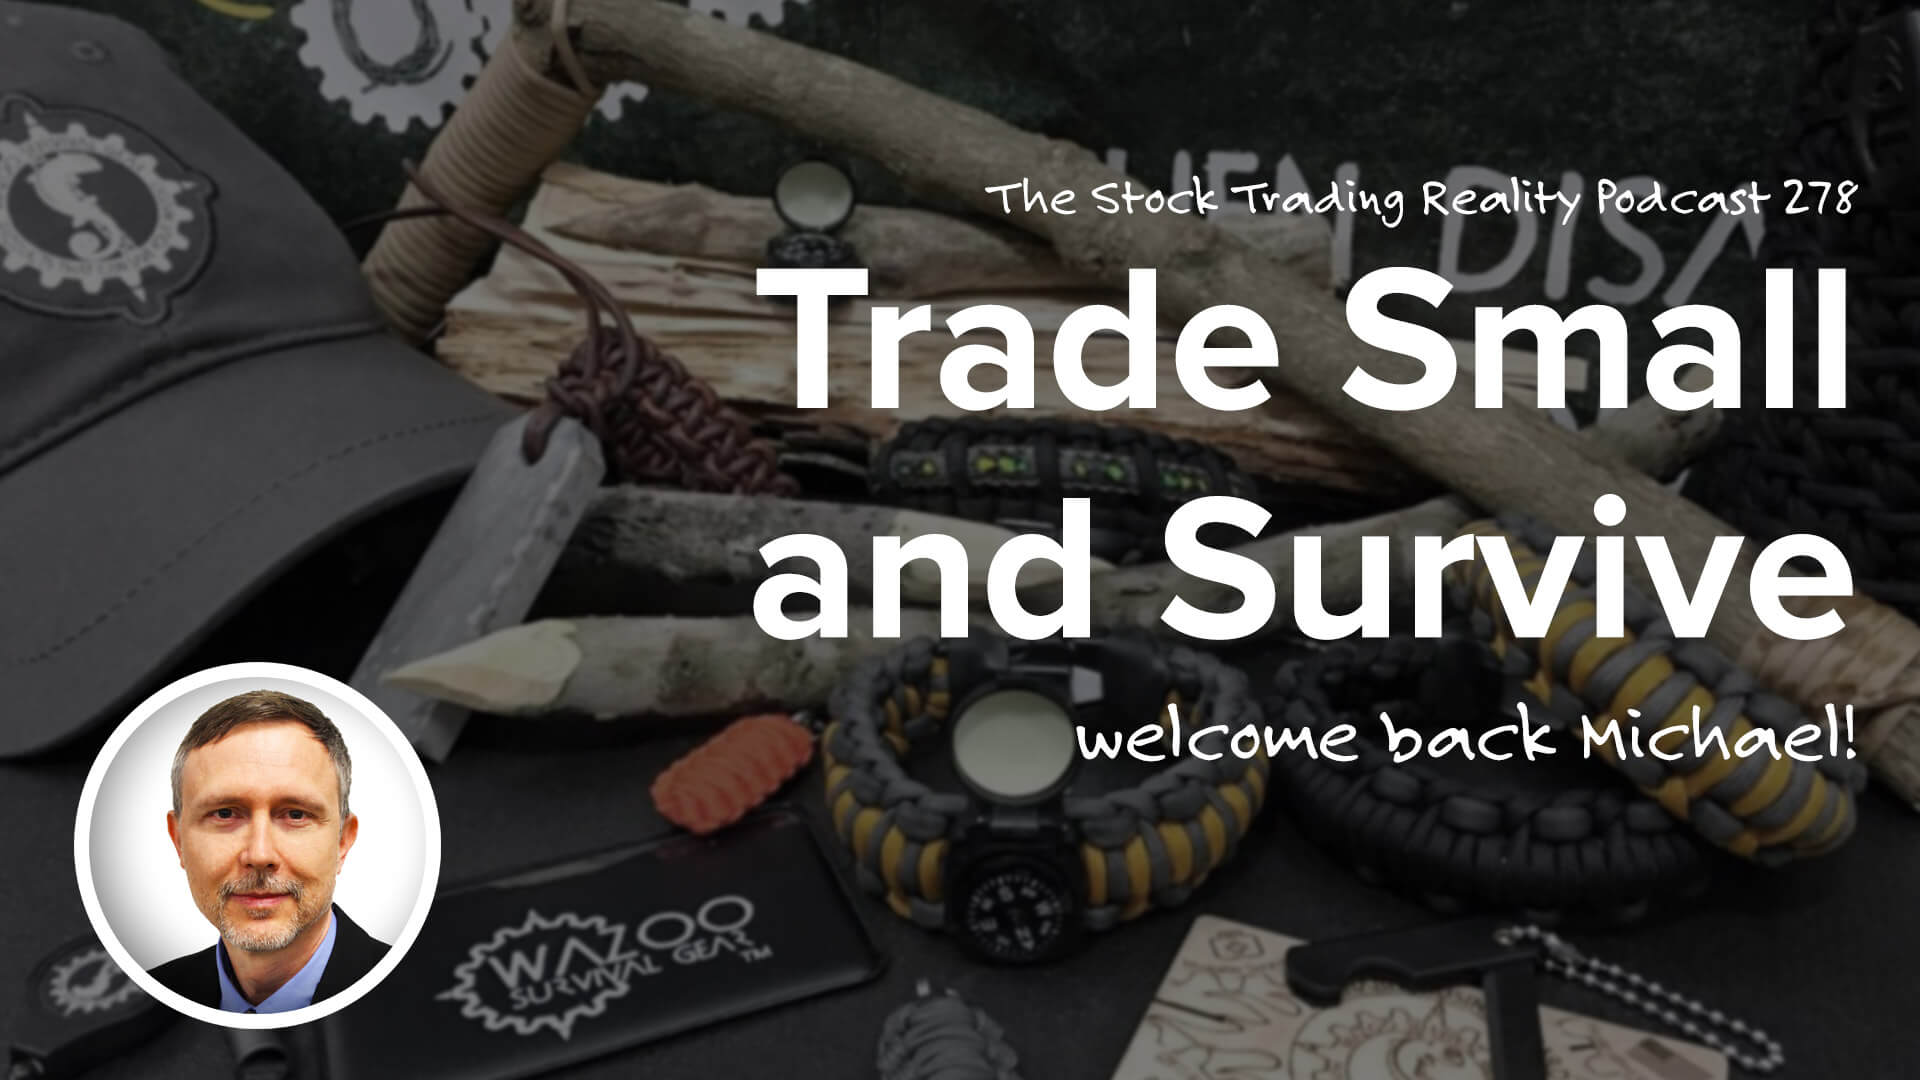 Trade Small and Survive | STR 278